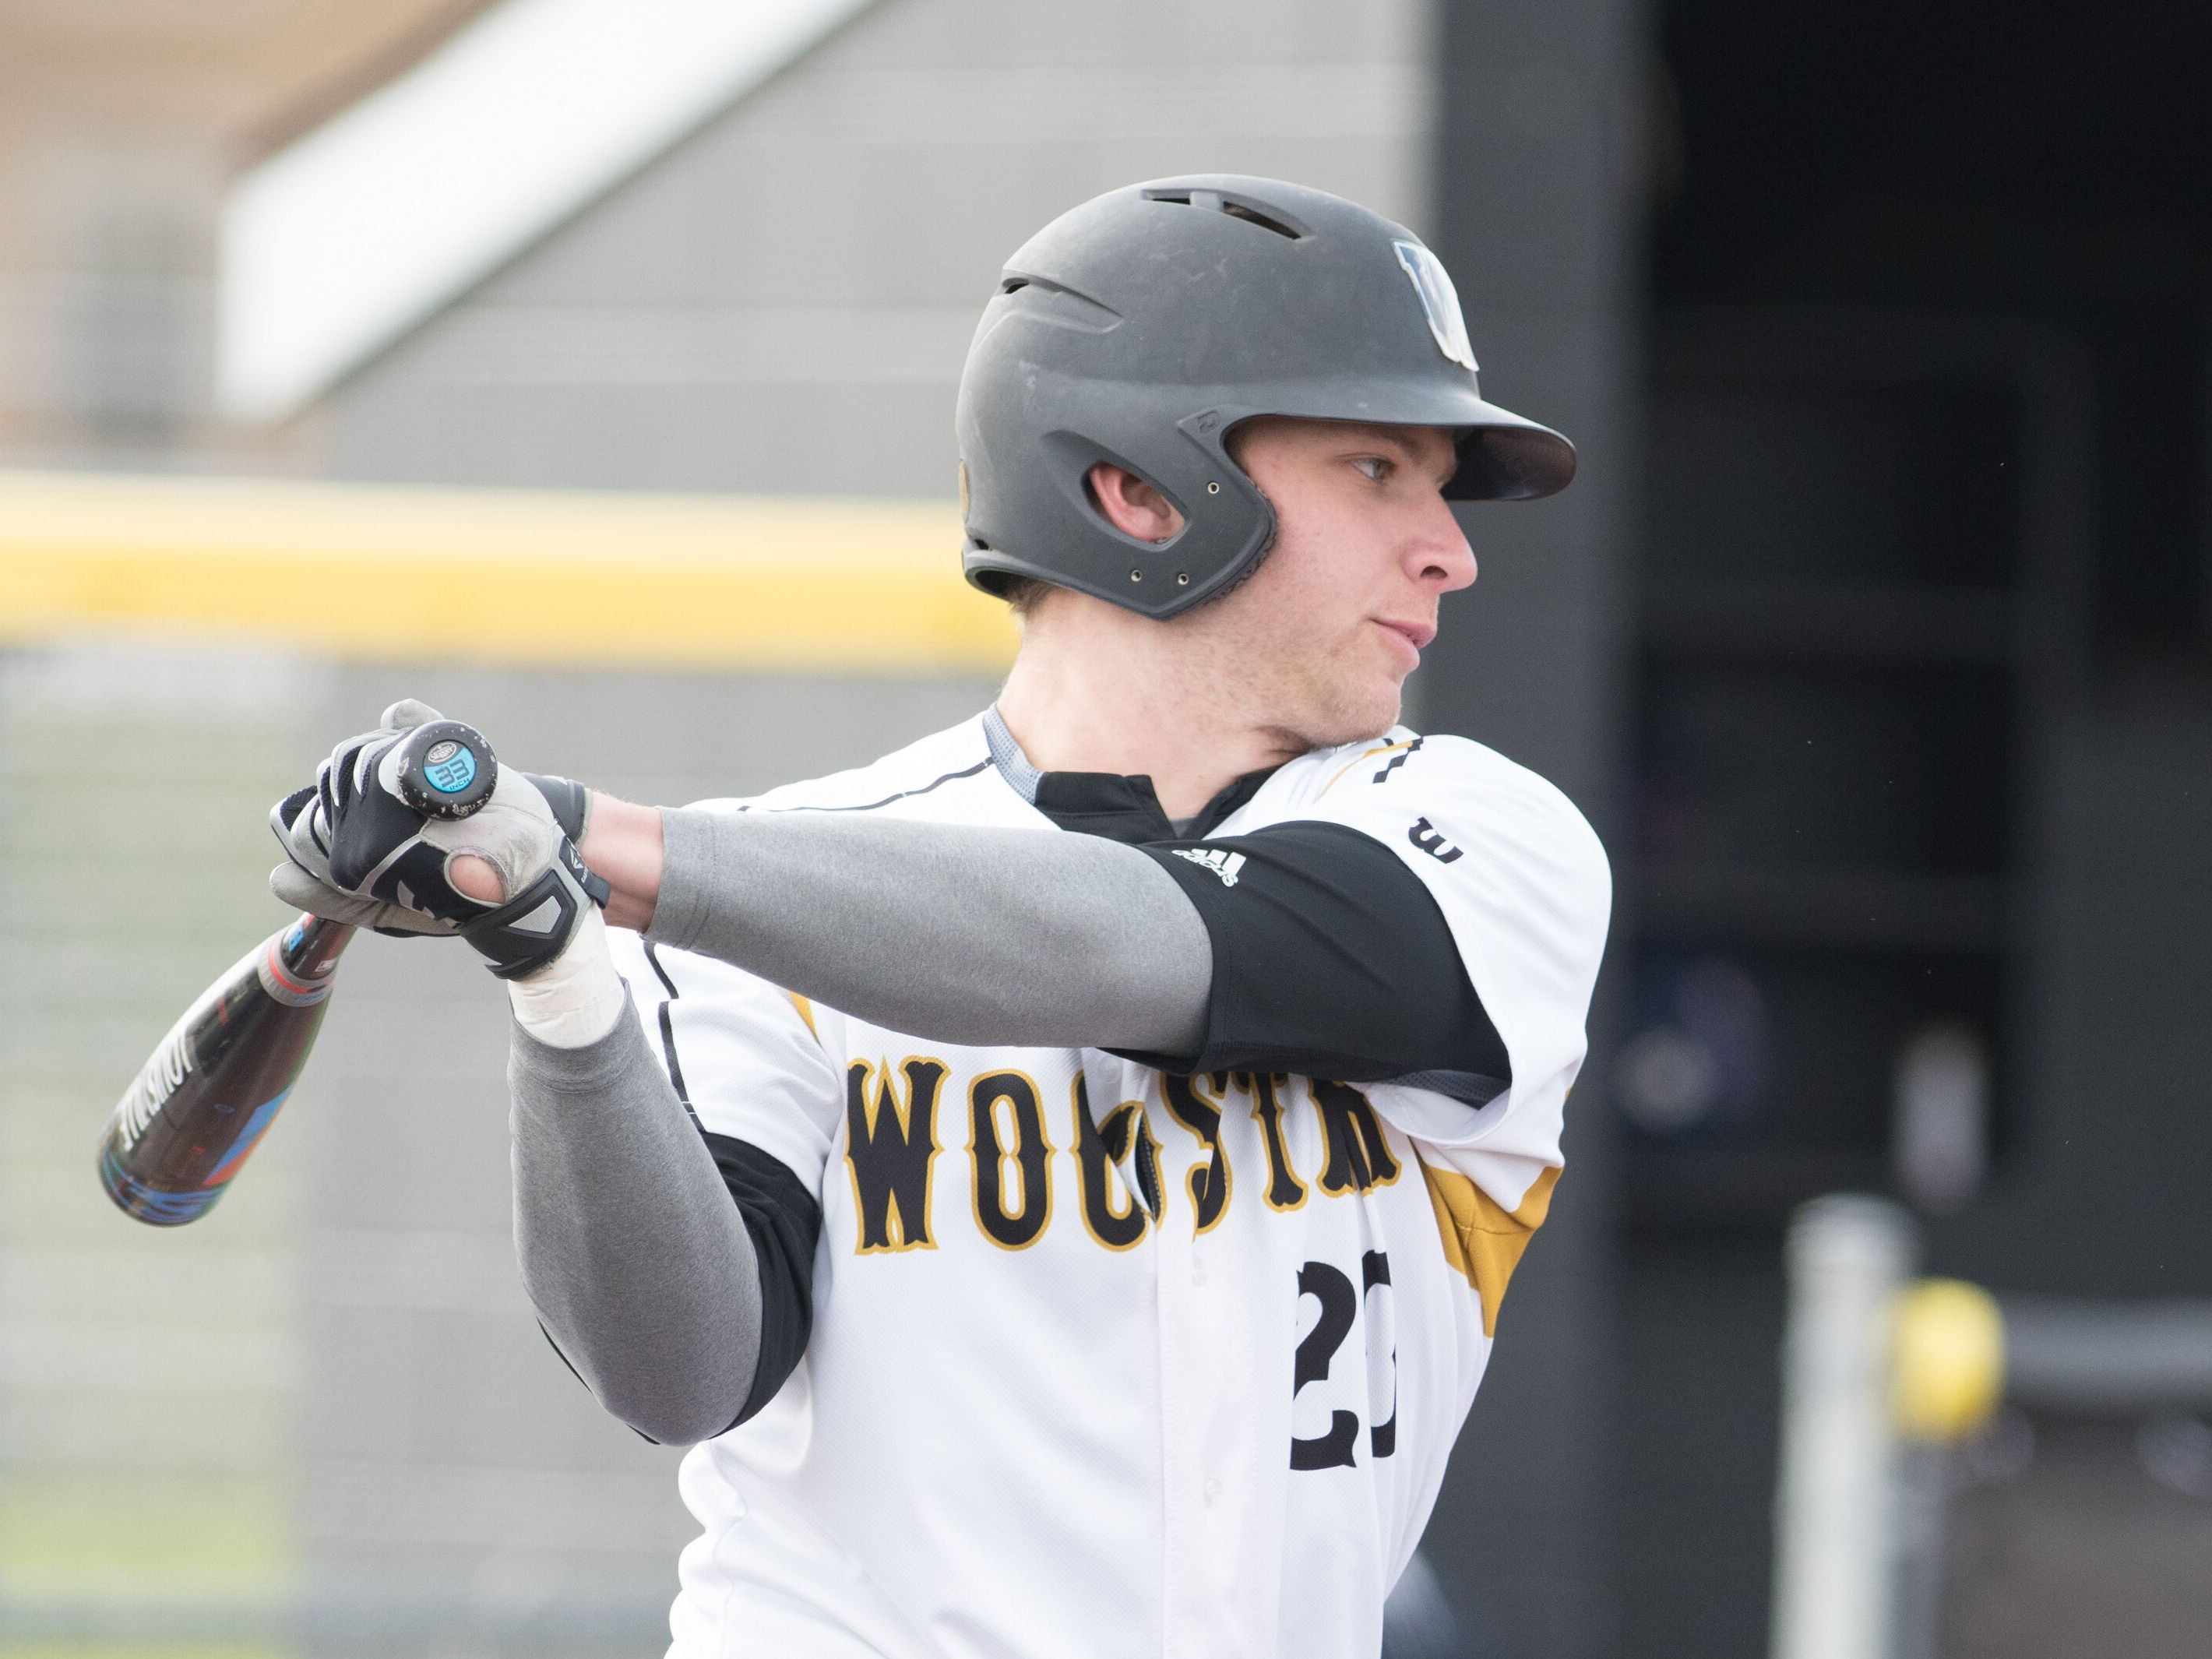 Wooster's Harwood still hoping to get drafted